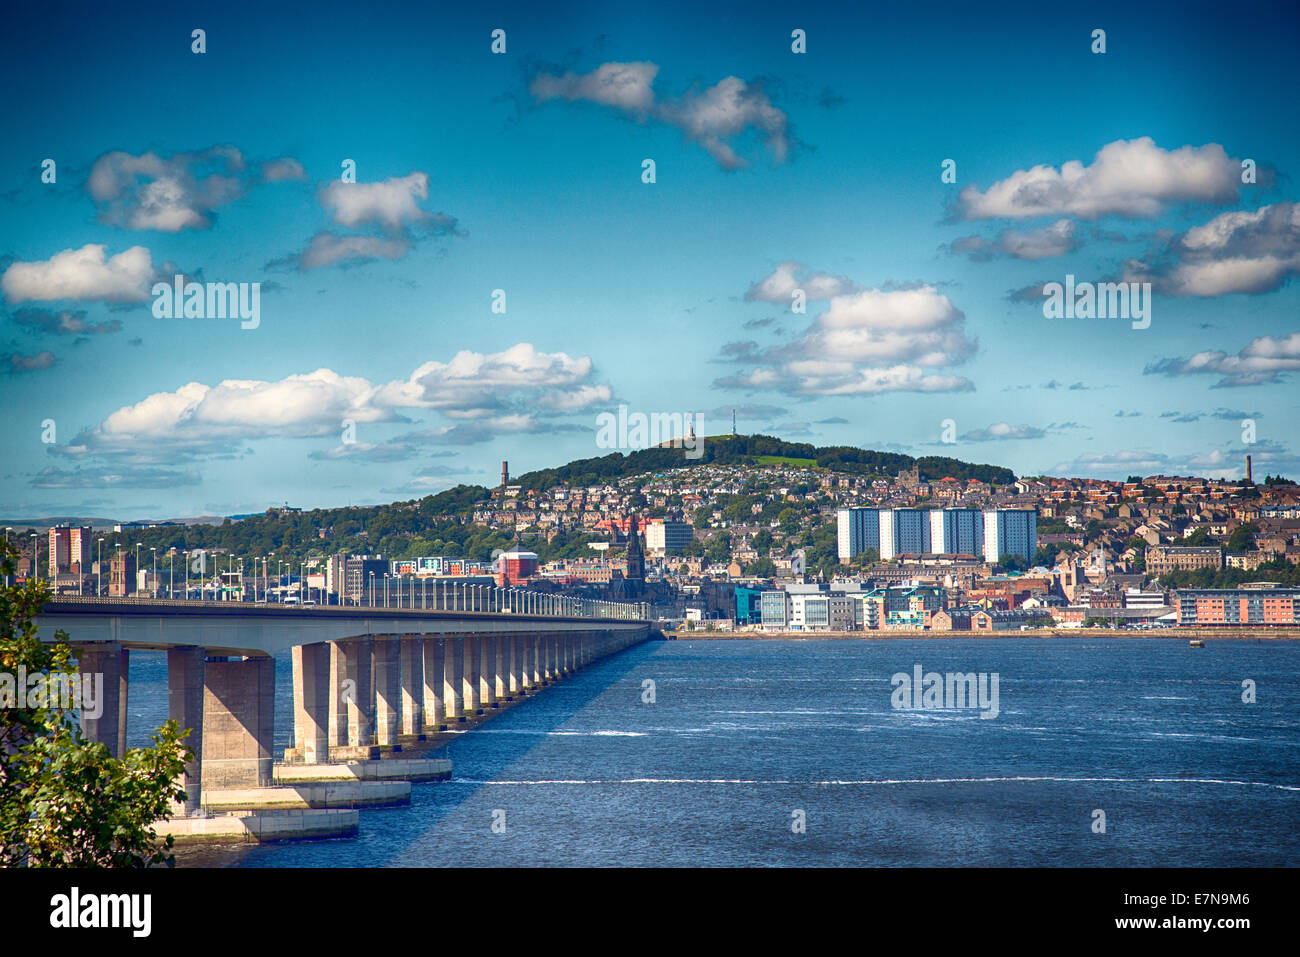 Looking North at the Tay Road Bridge, towards Dundee, Scotland - Stock Image